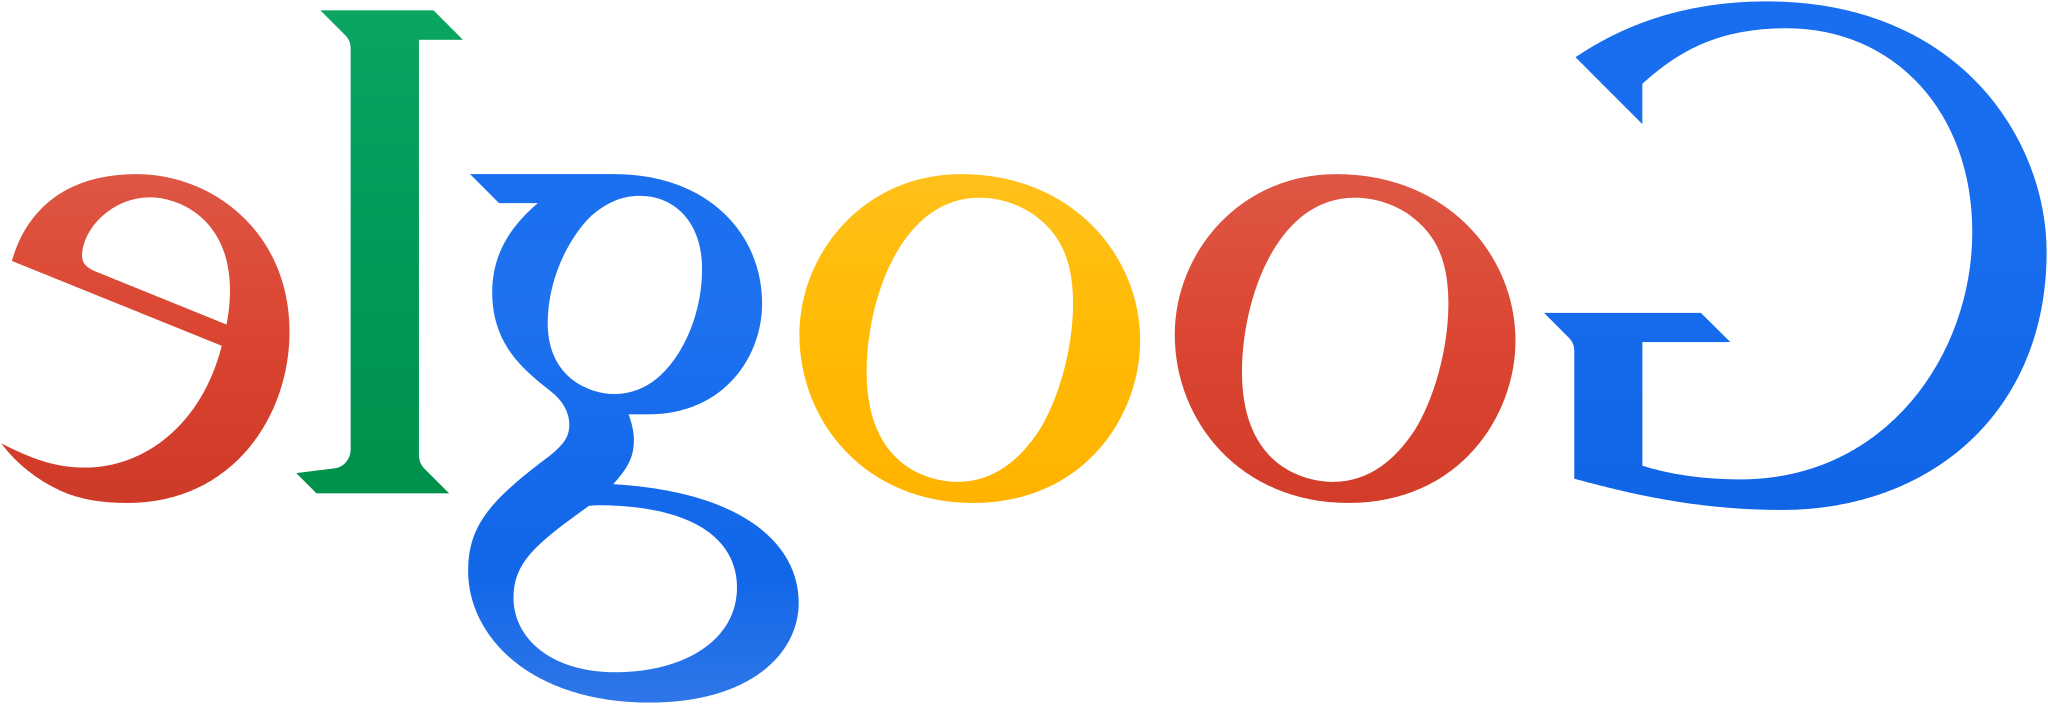 File:ElgooG 2015 logo.png - Wikimedia Commons